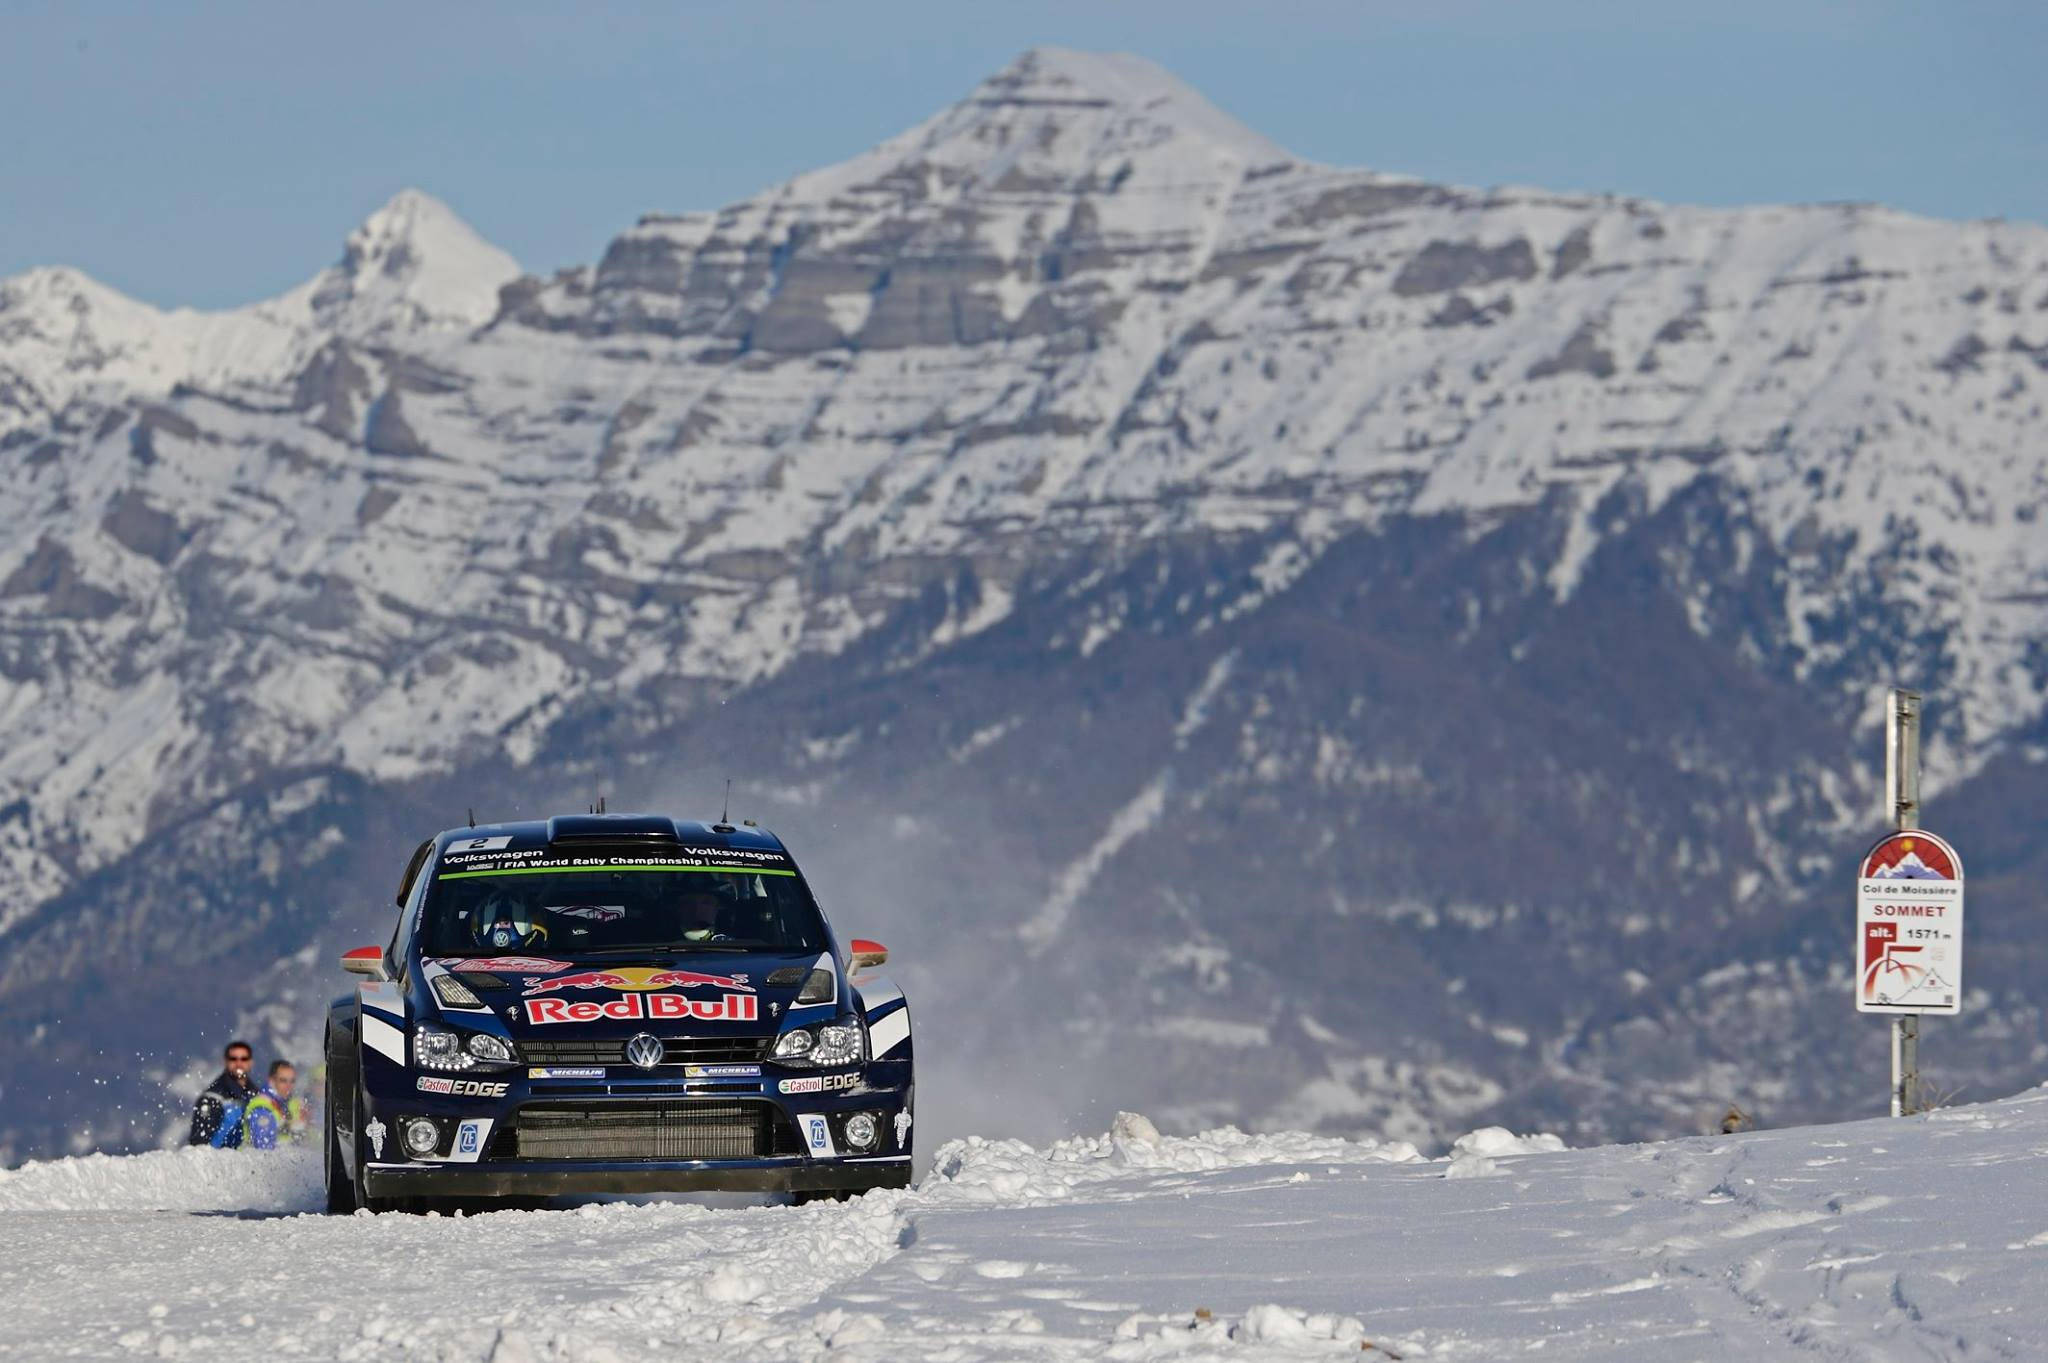 wrc sebastien ogier kicks off 2016 with rallye monte carlo win gtspirit. Black Bedroom Furniture Sets. Home Design Ideas